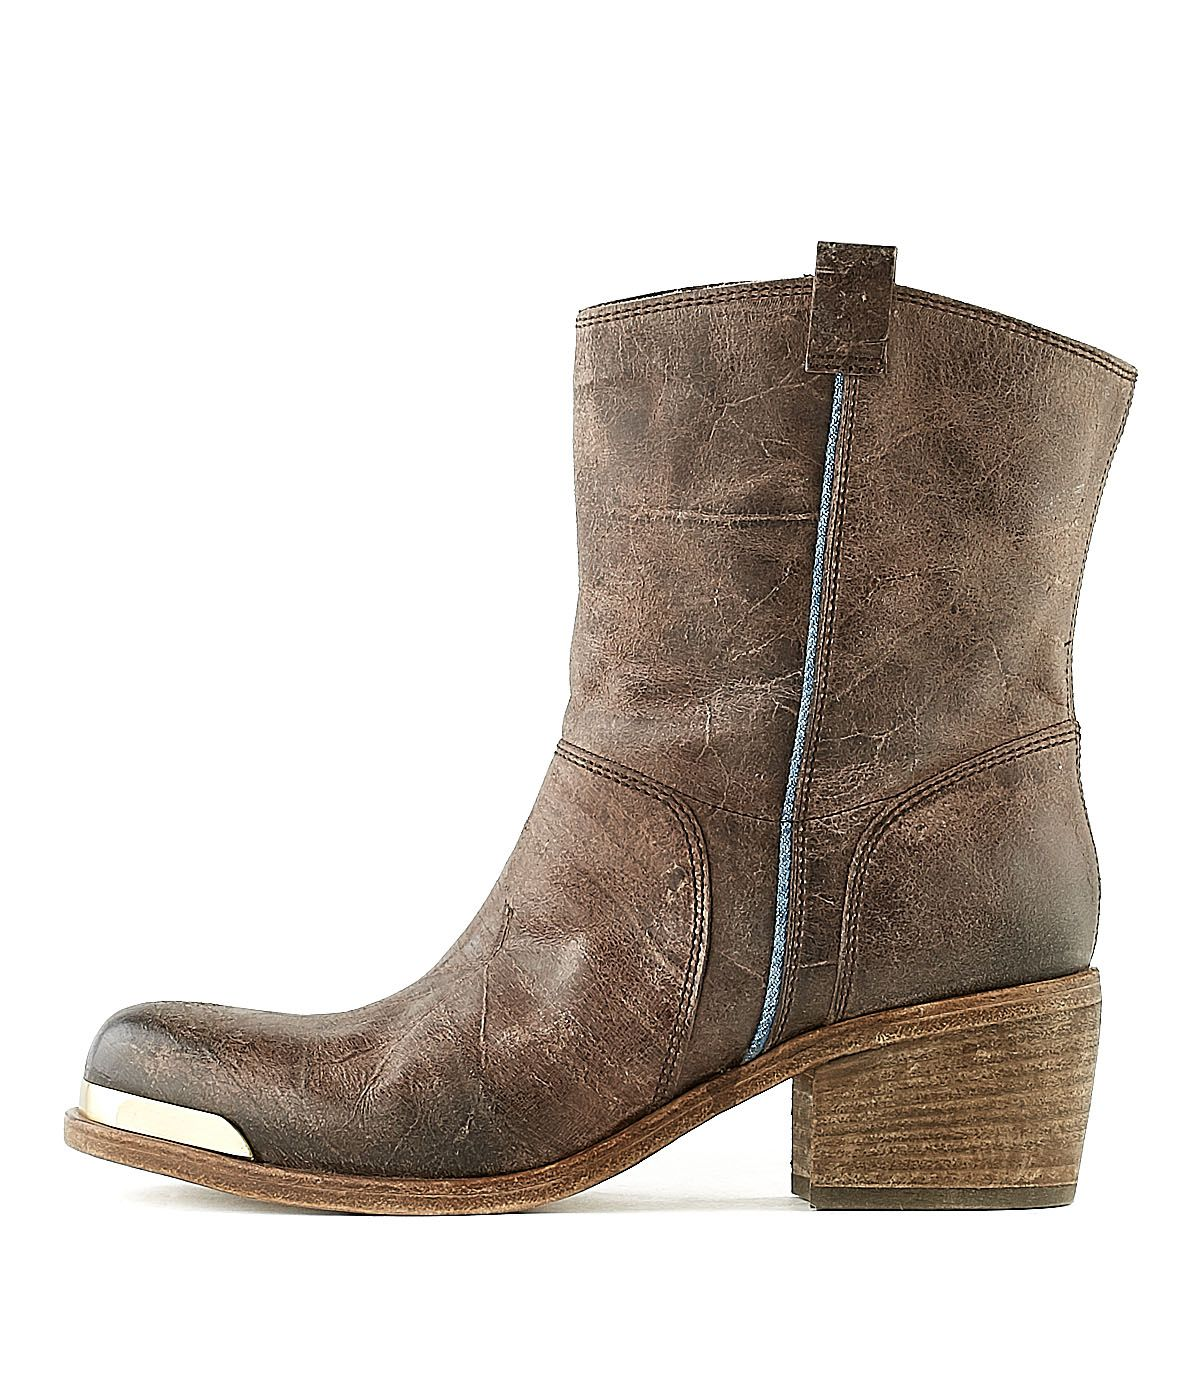 OXS   Stiefelette 4432 Brown Women   Rossi&Co #women #fashion #boots #oxs #italian #madeinitaly #bootsforwomen #designer #brown #leather #love #online #sale #present #ideas #gift #girlfriend #cognac #cool #outlet #ankleboots #heels #rossiundco